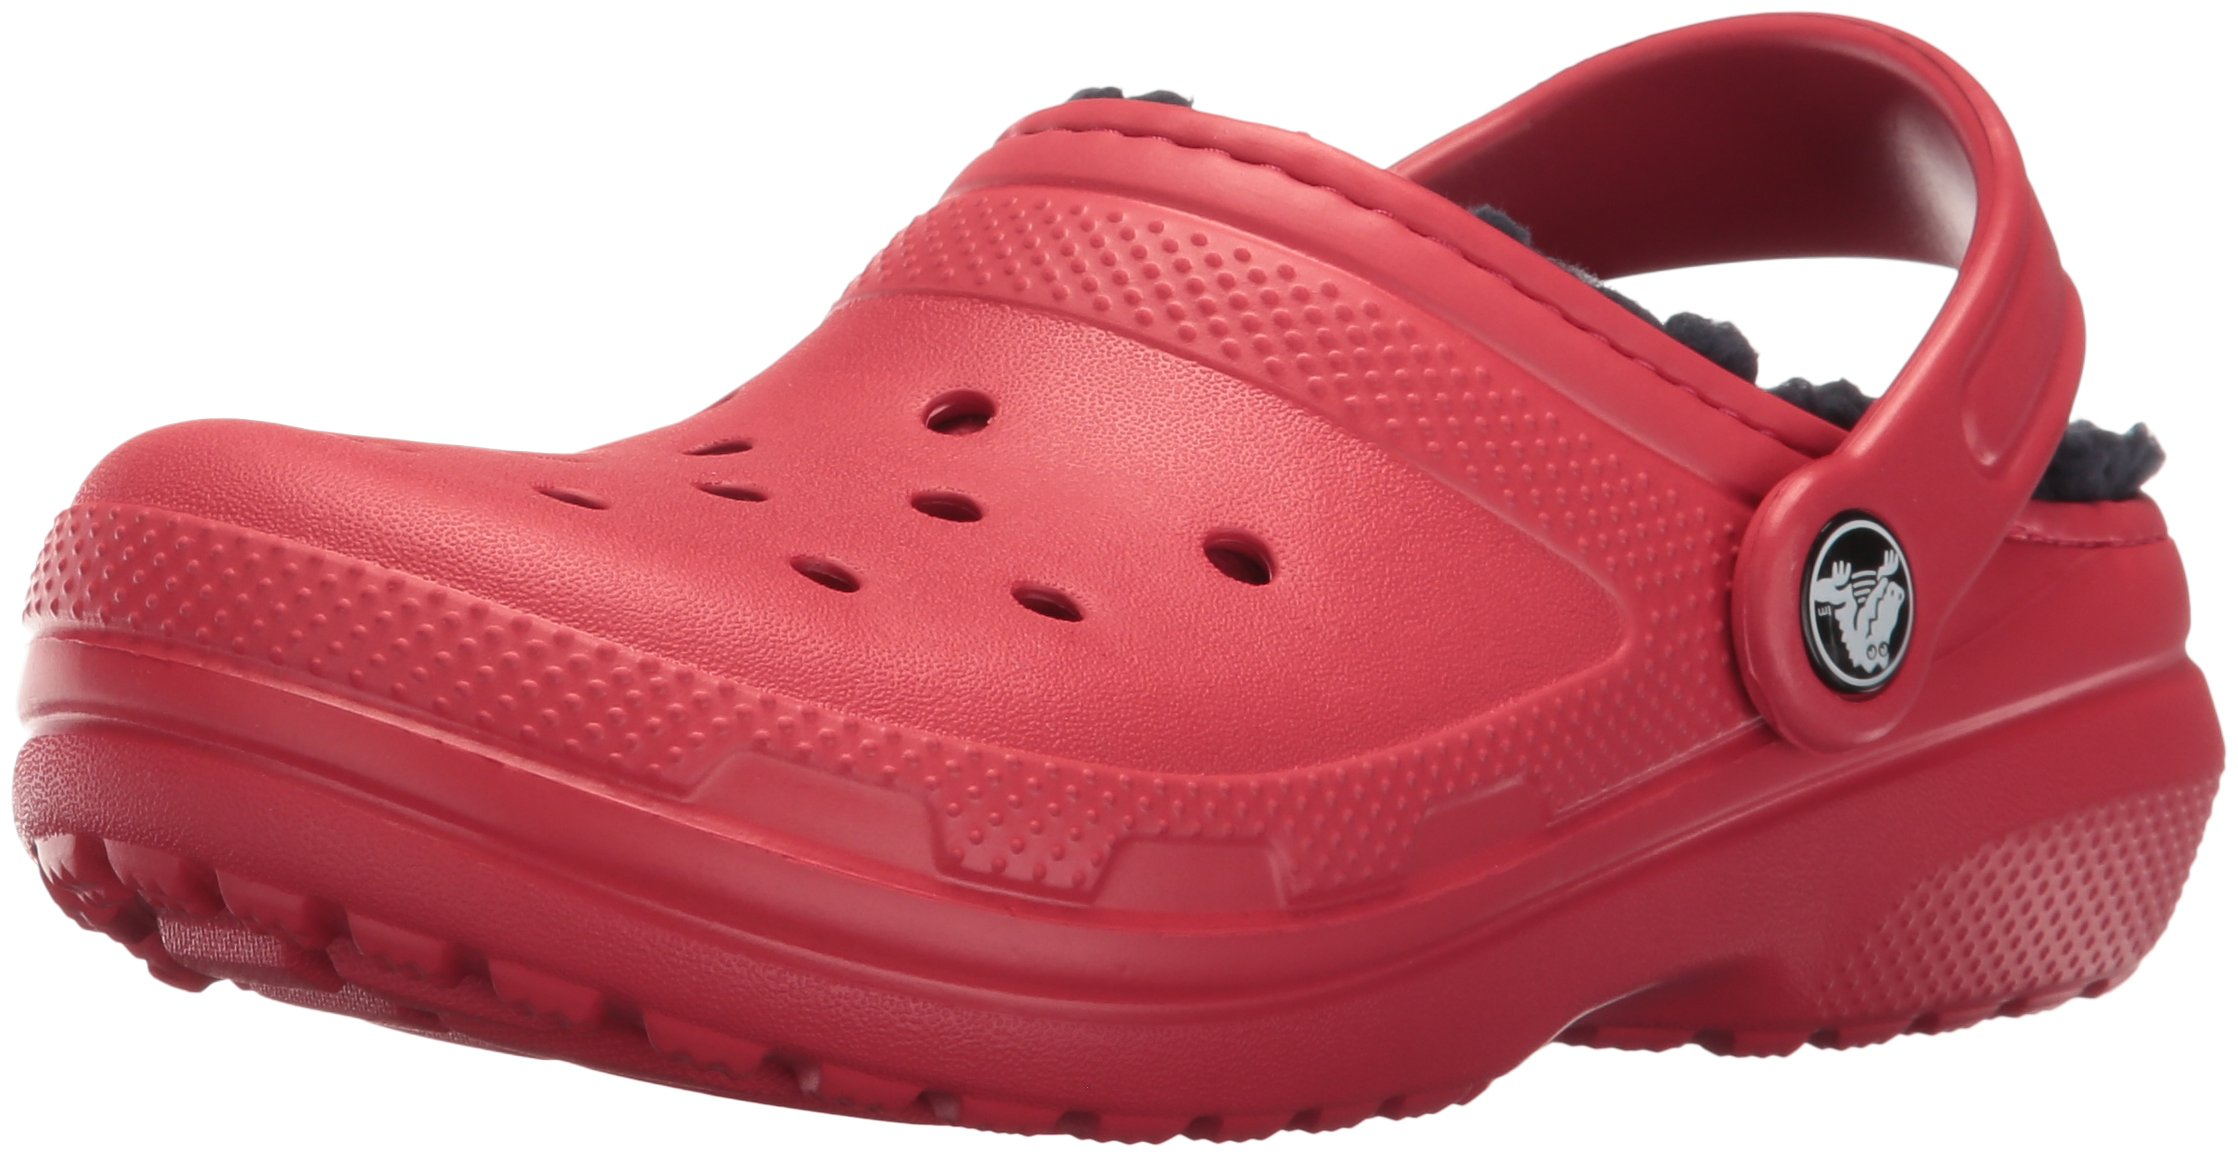 crocs Classic Lined Clog (Toddler/Little Kid), Pepper/Navy, 1 M US Little Kid